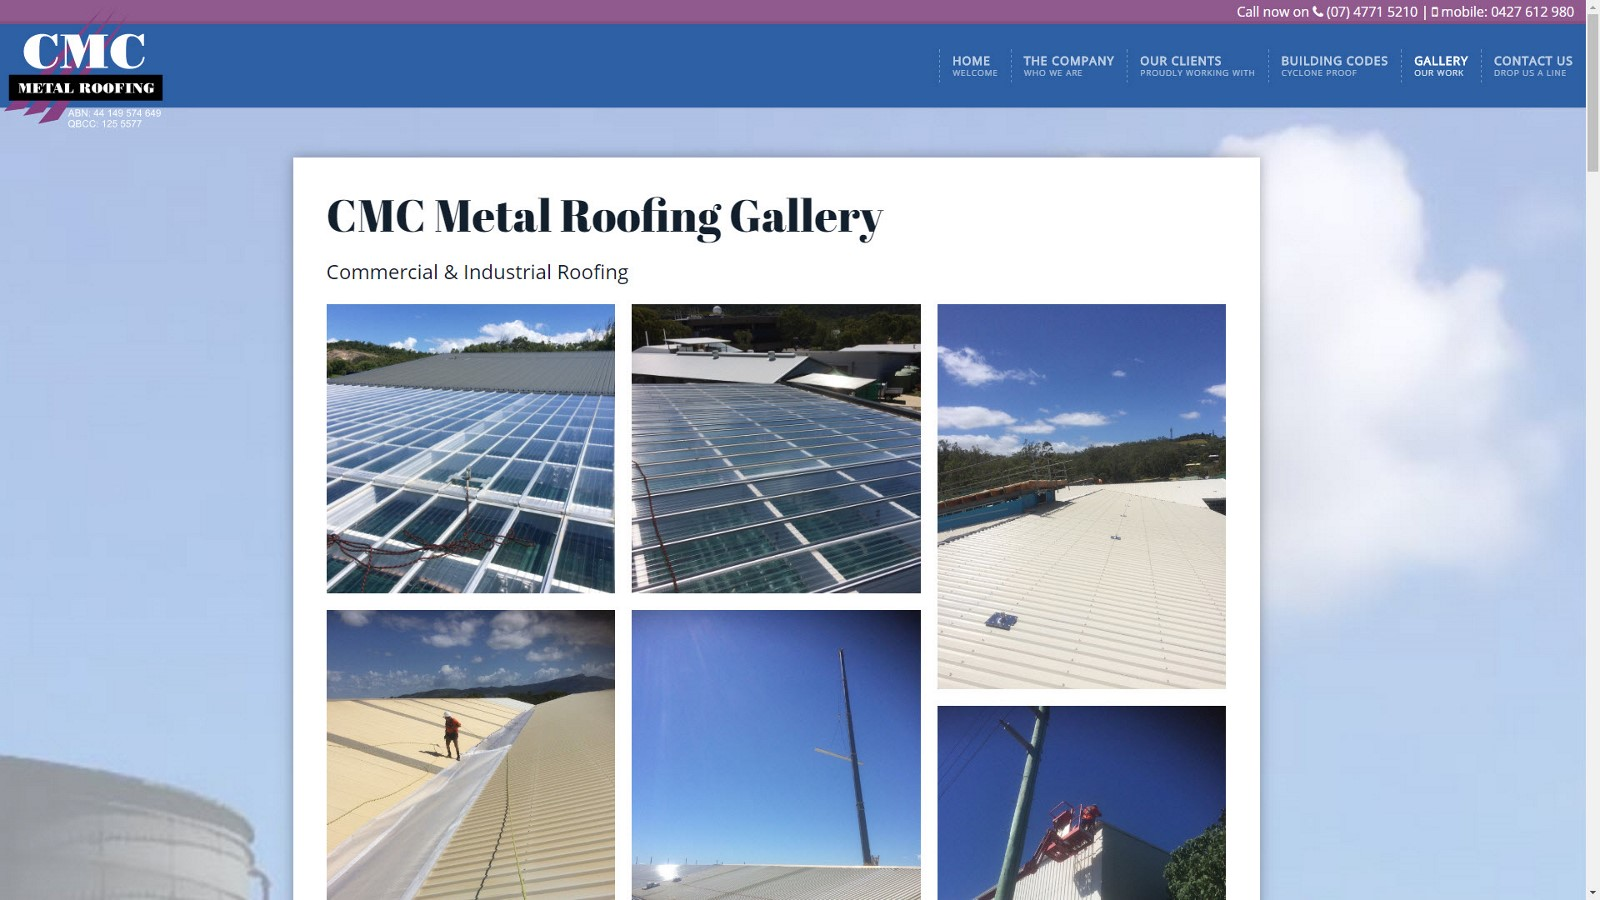 cmc03 CMC Metal Roofing